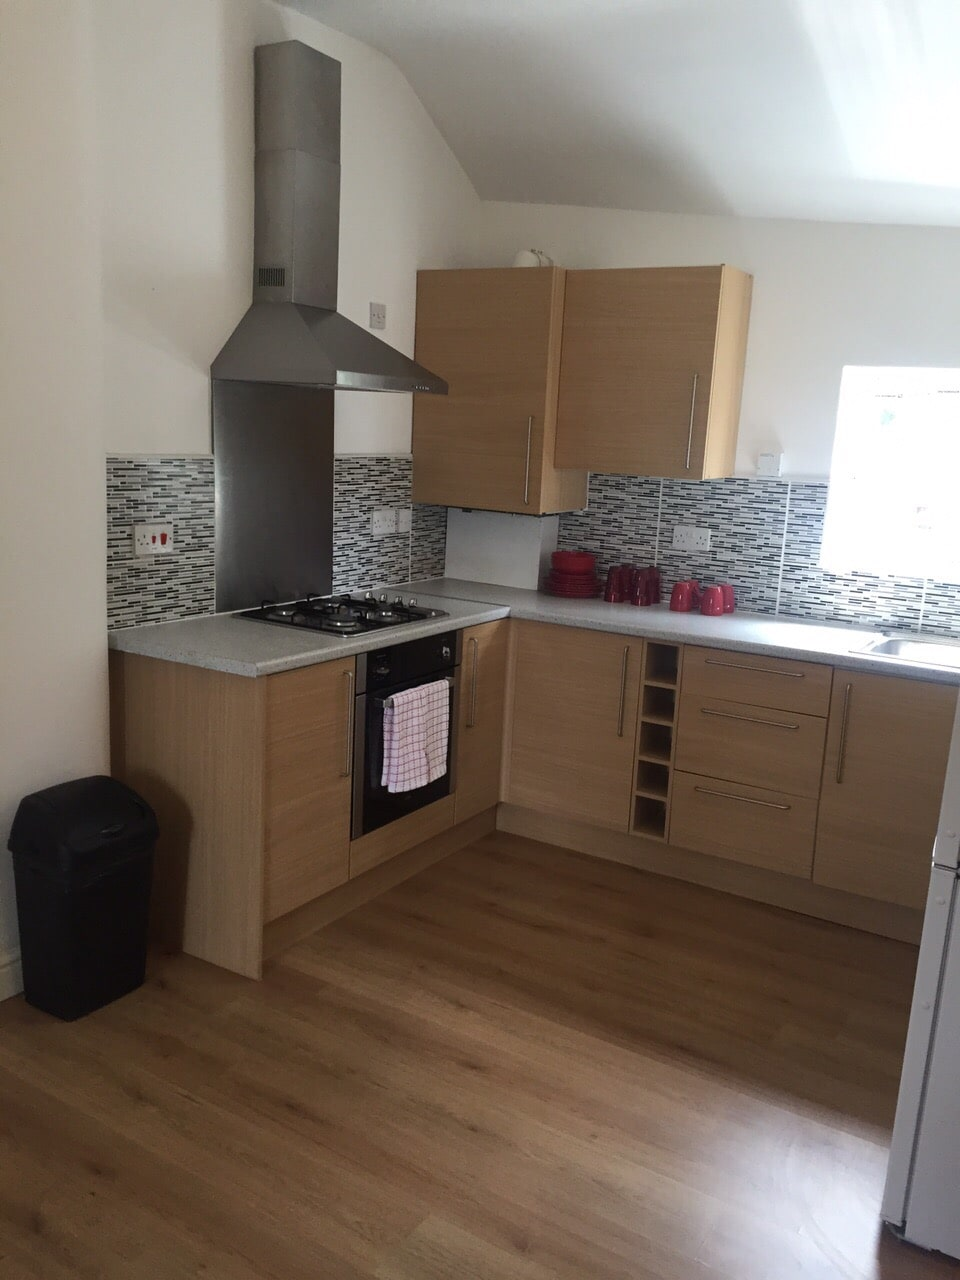 Double bedroom apartment available